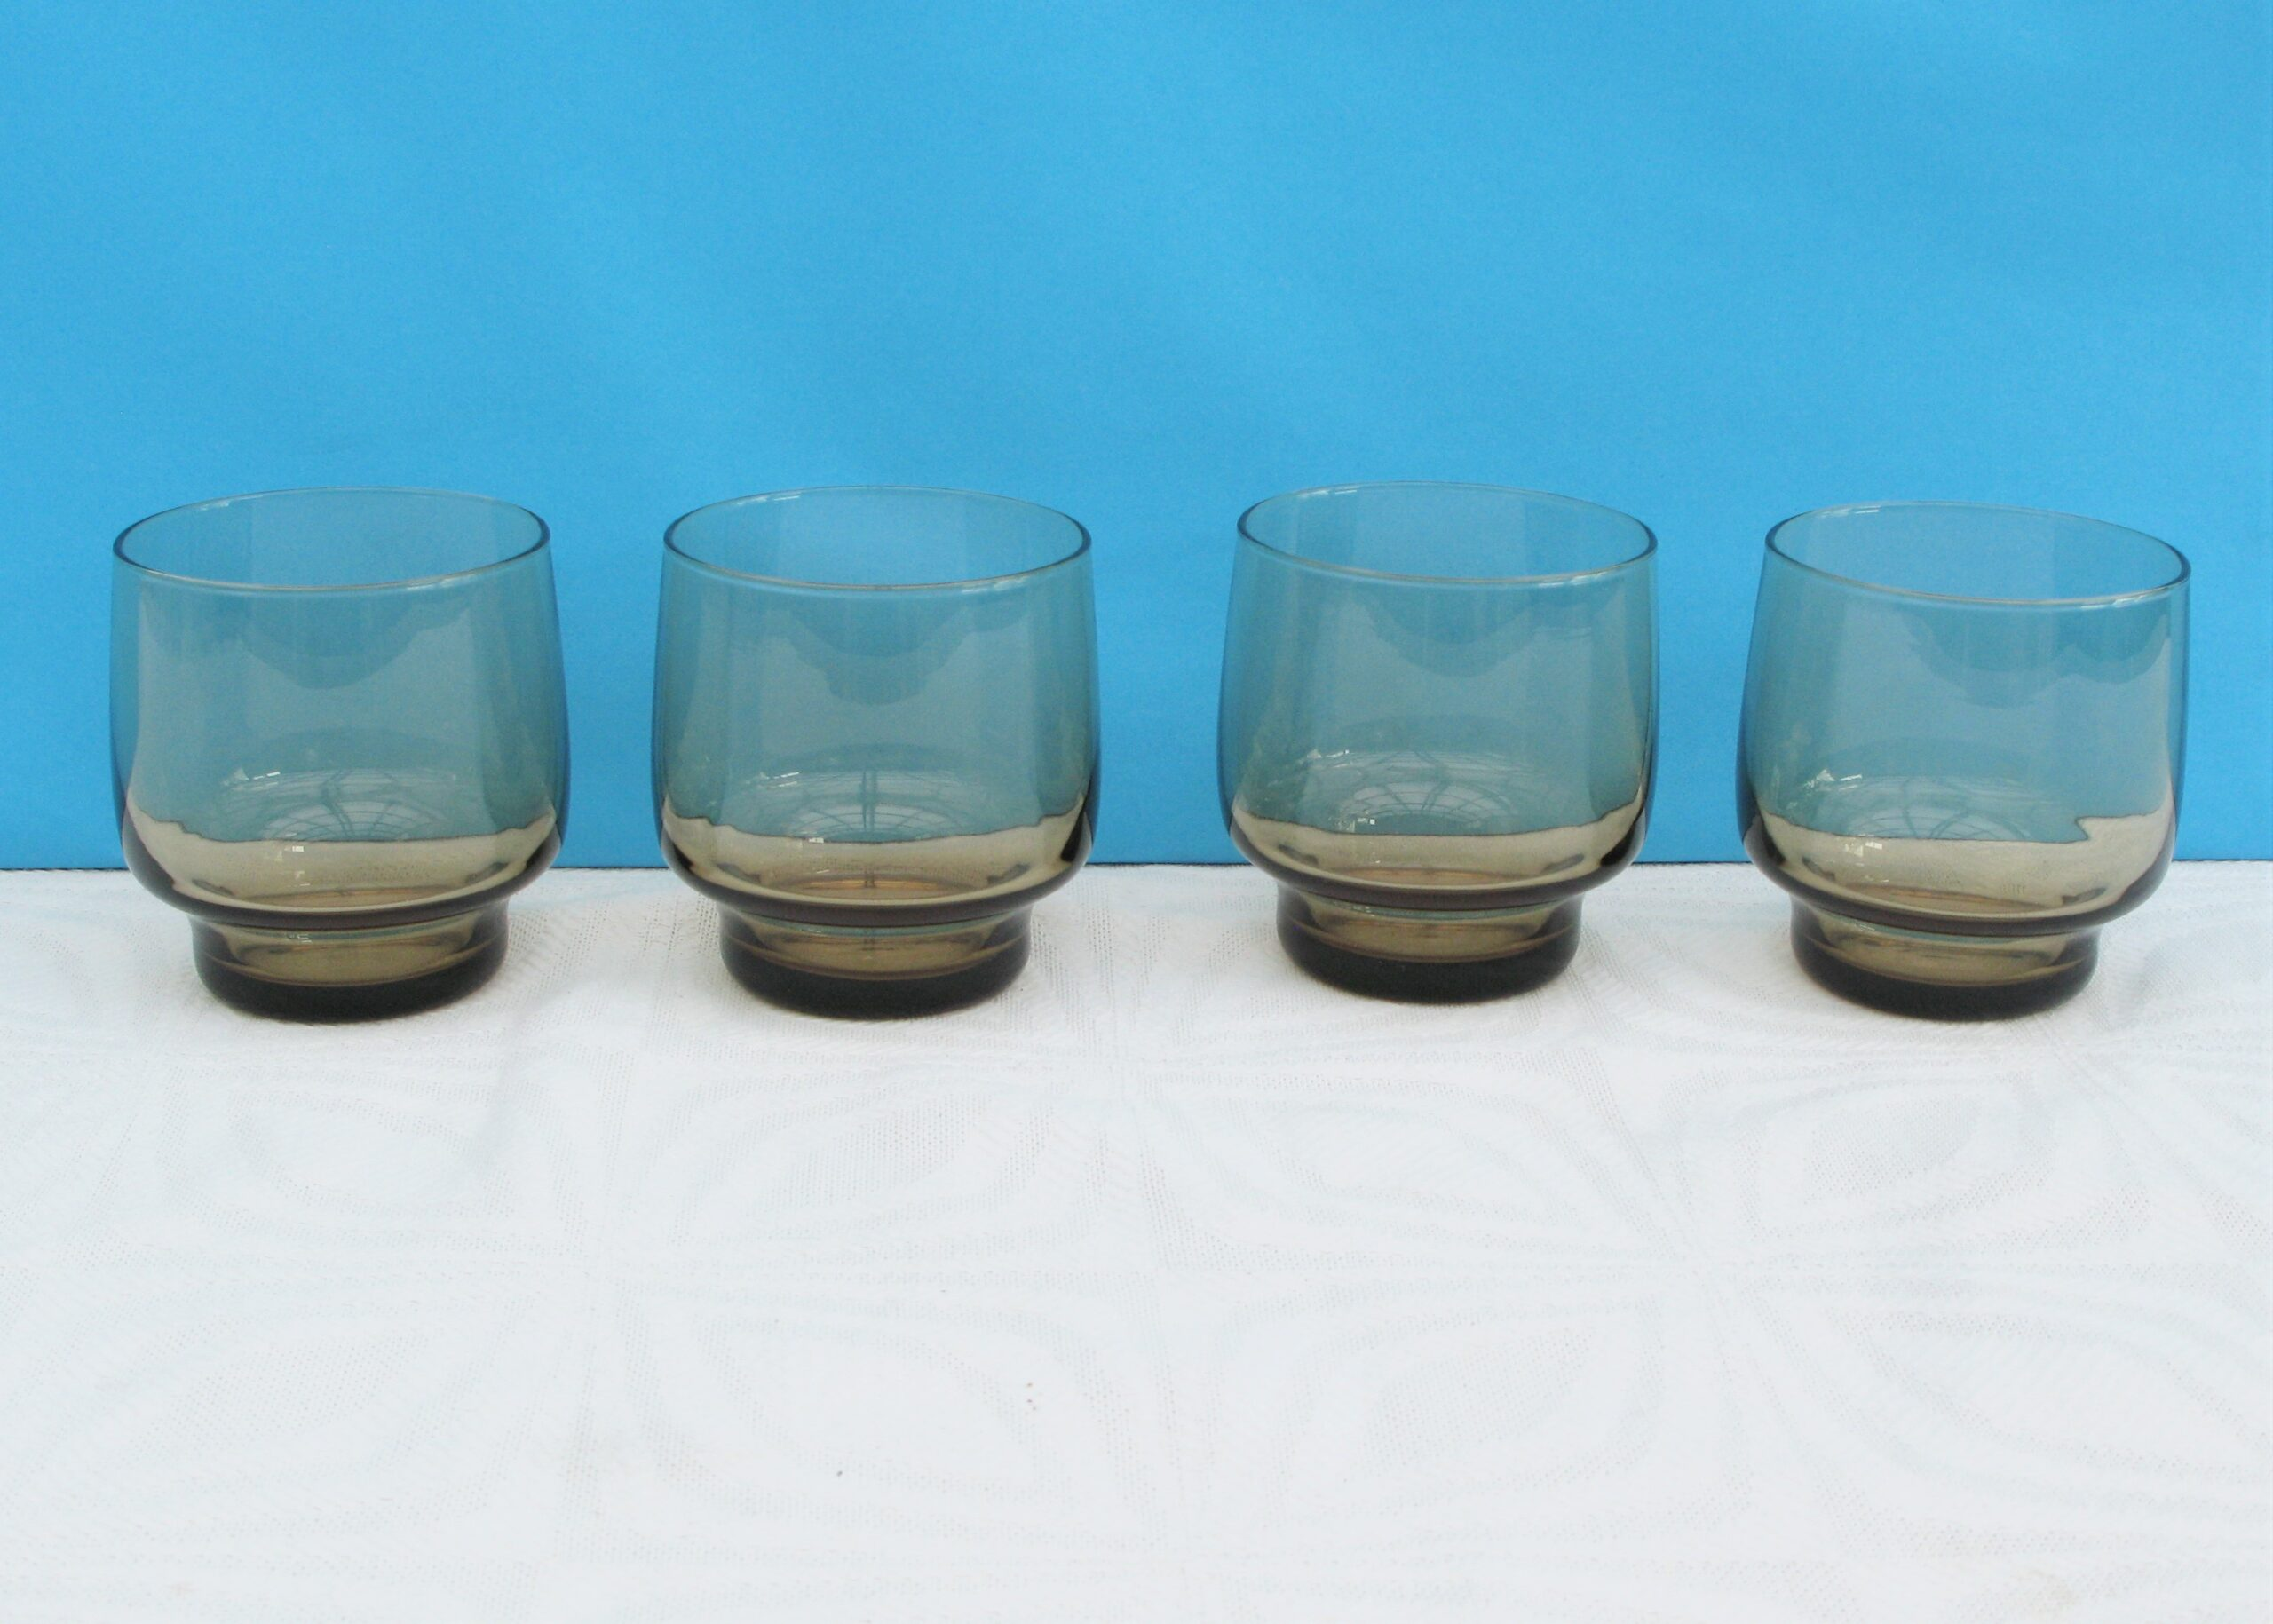 Vintage Smoked Glass Tumblers Water Glasses Set of 4 Luminarc 70s 80s